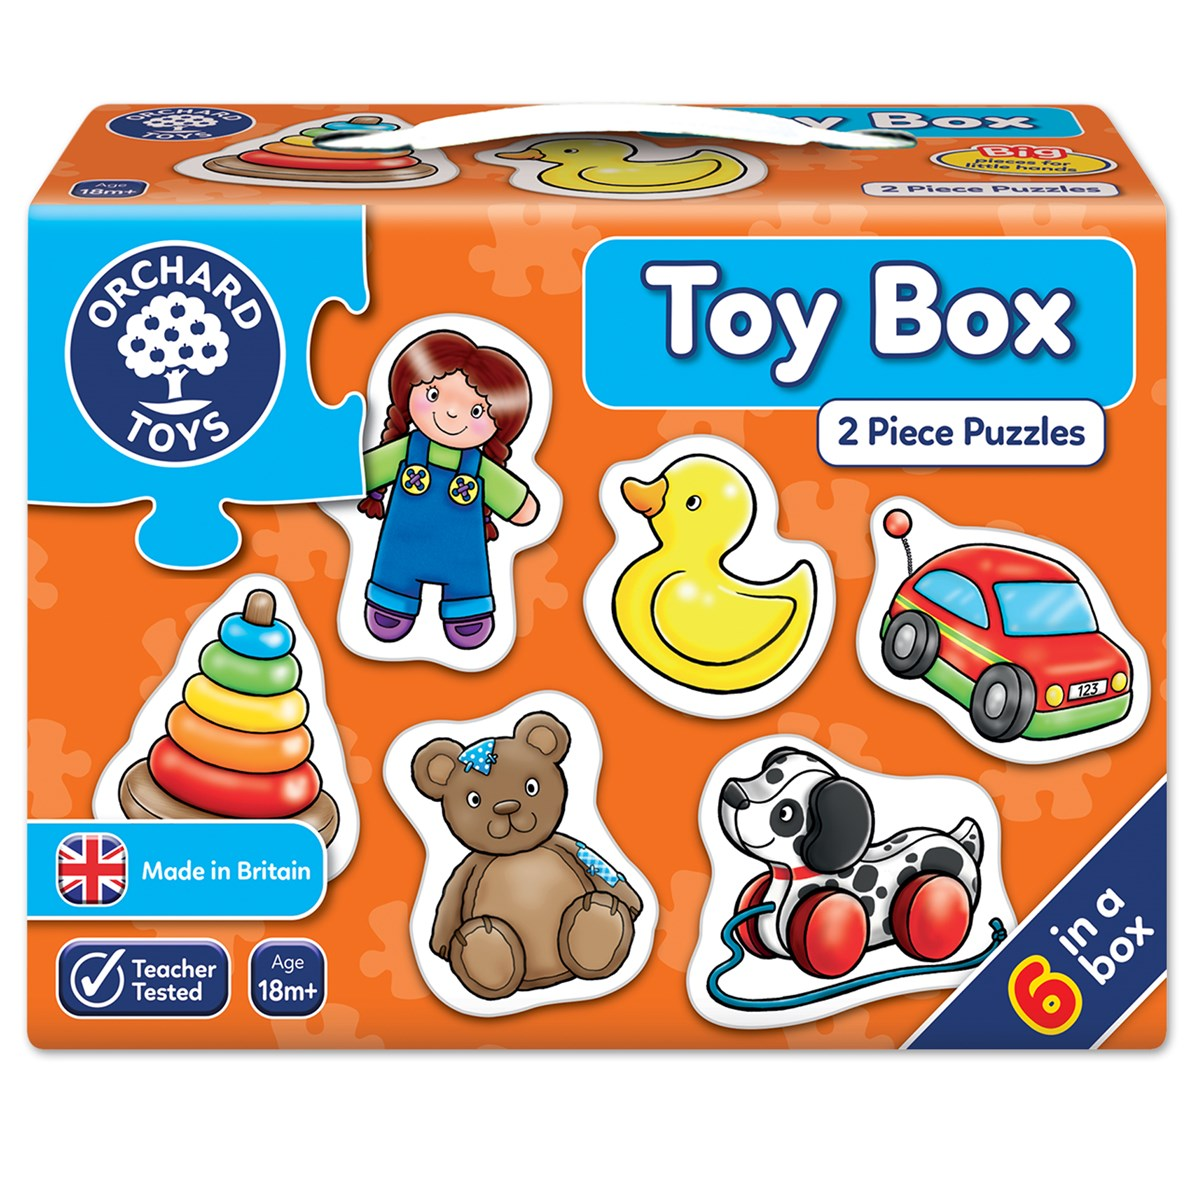 Toy Box From Spare Cardboard